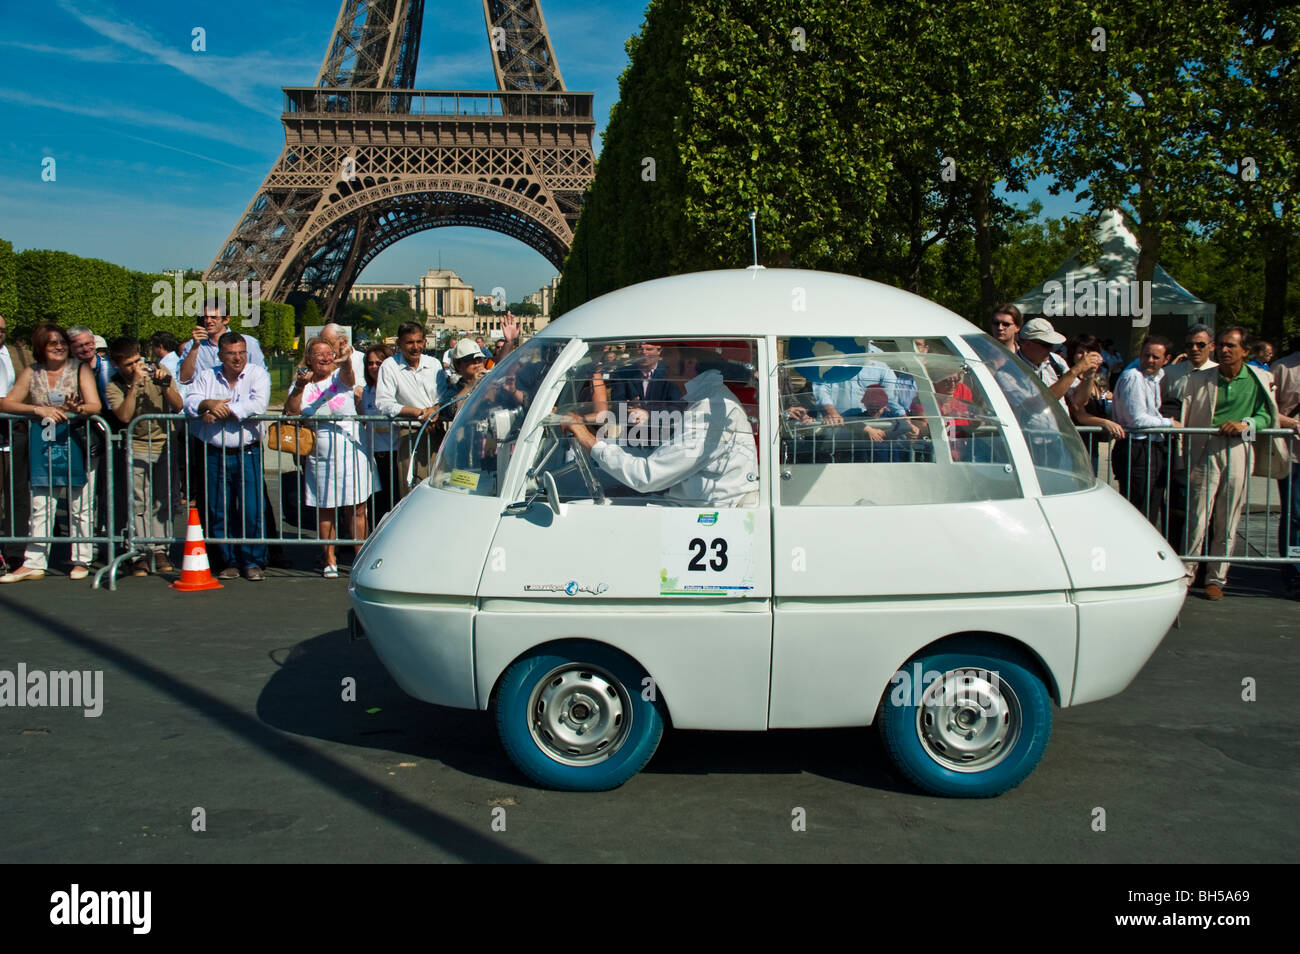 Funny Looking Electric Car Participating In Michelin Challenge Stock Photo Alamy